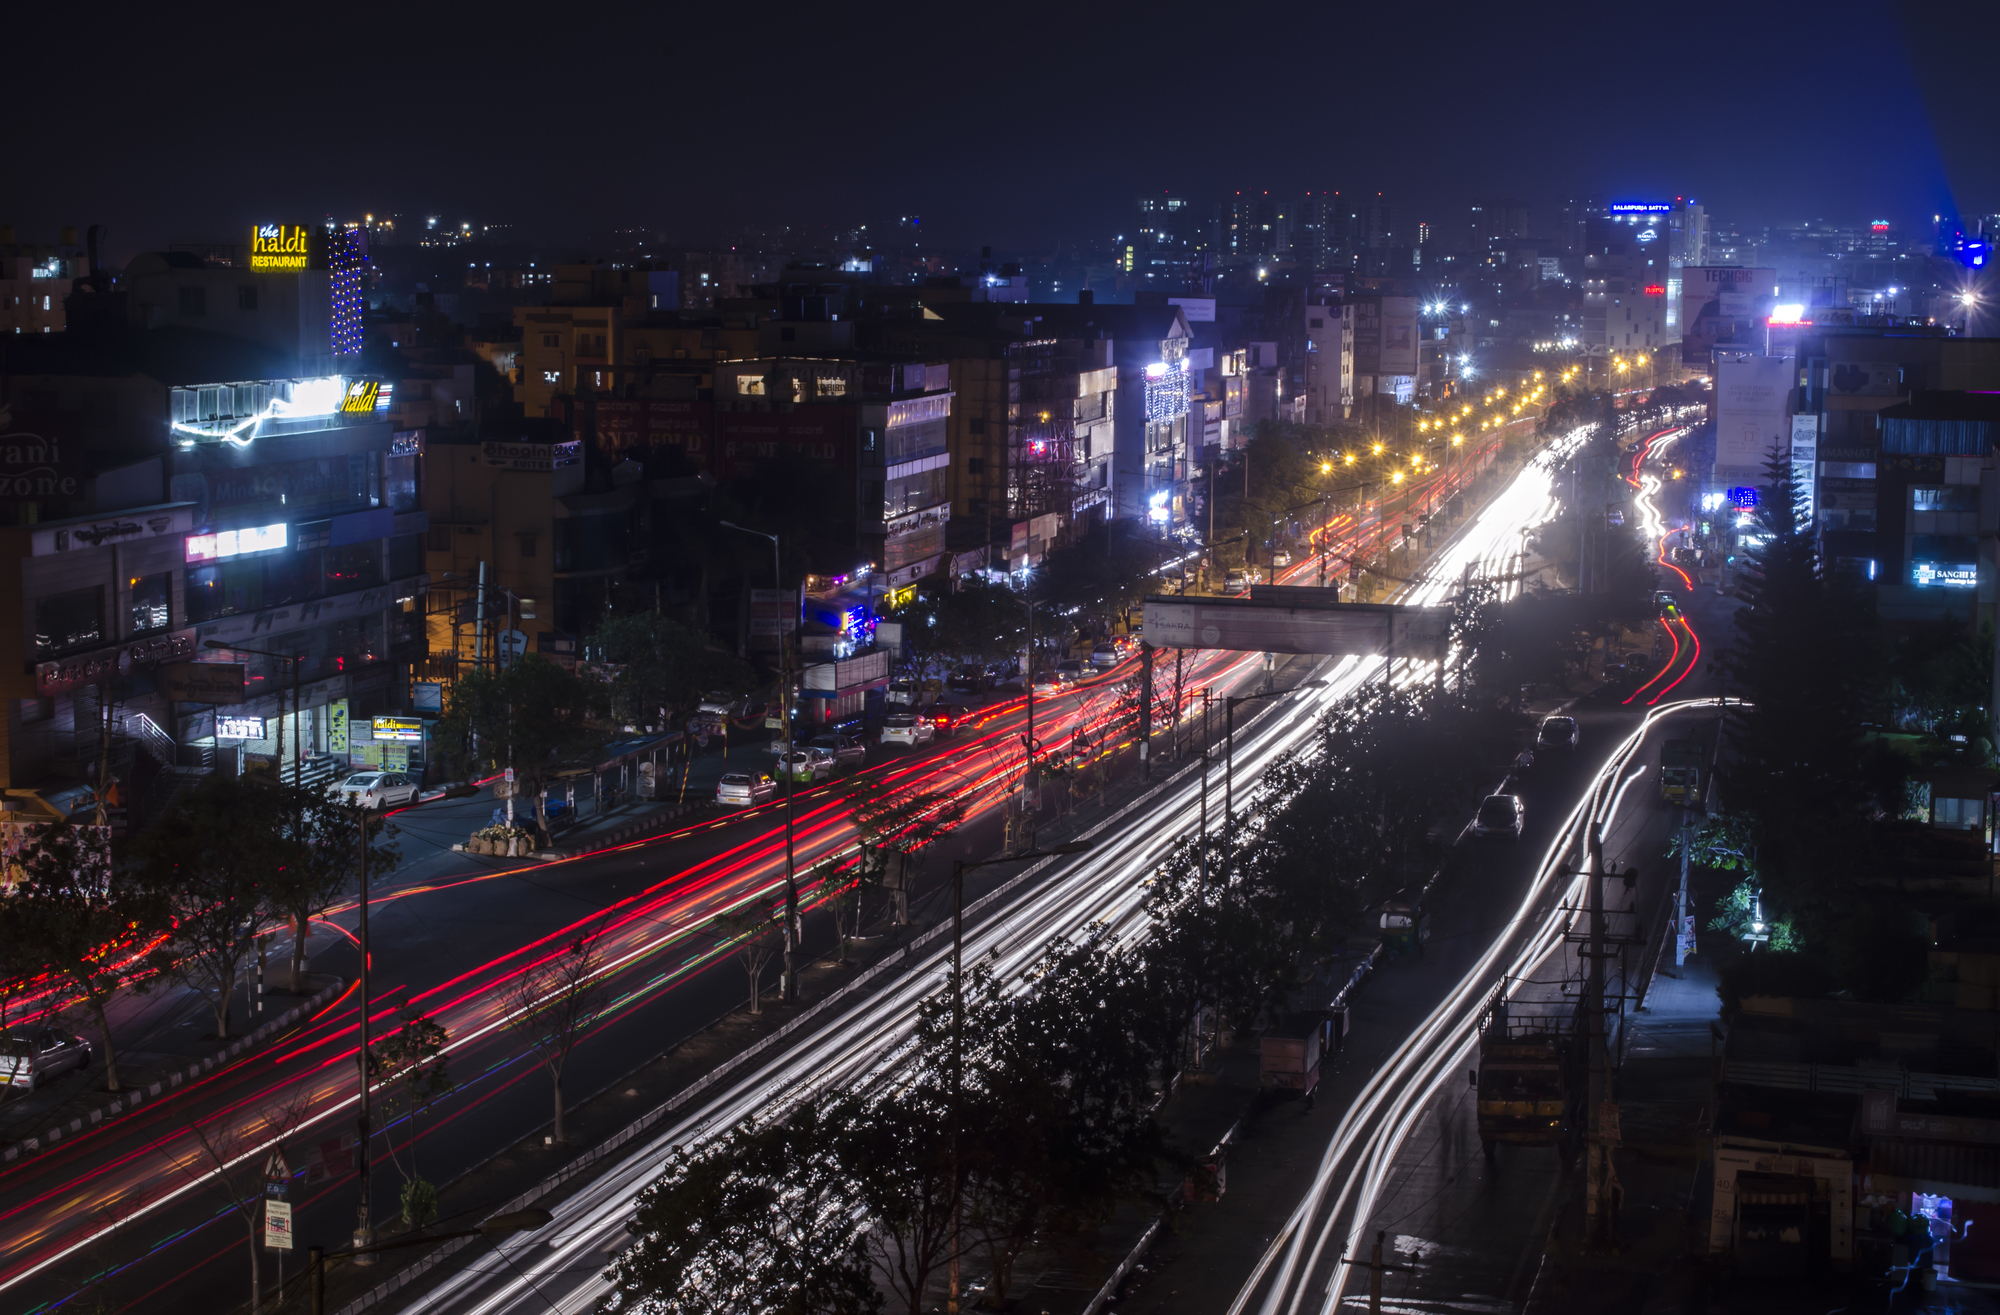 A birds eye view of the four lane outer ring road, this has the oncoming yellow light trail, as well as the red light trails from away traffic.